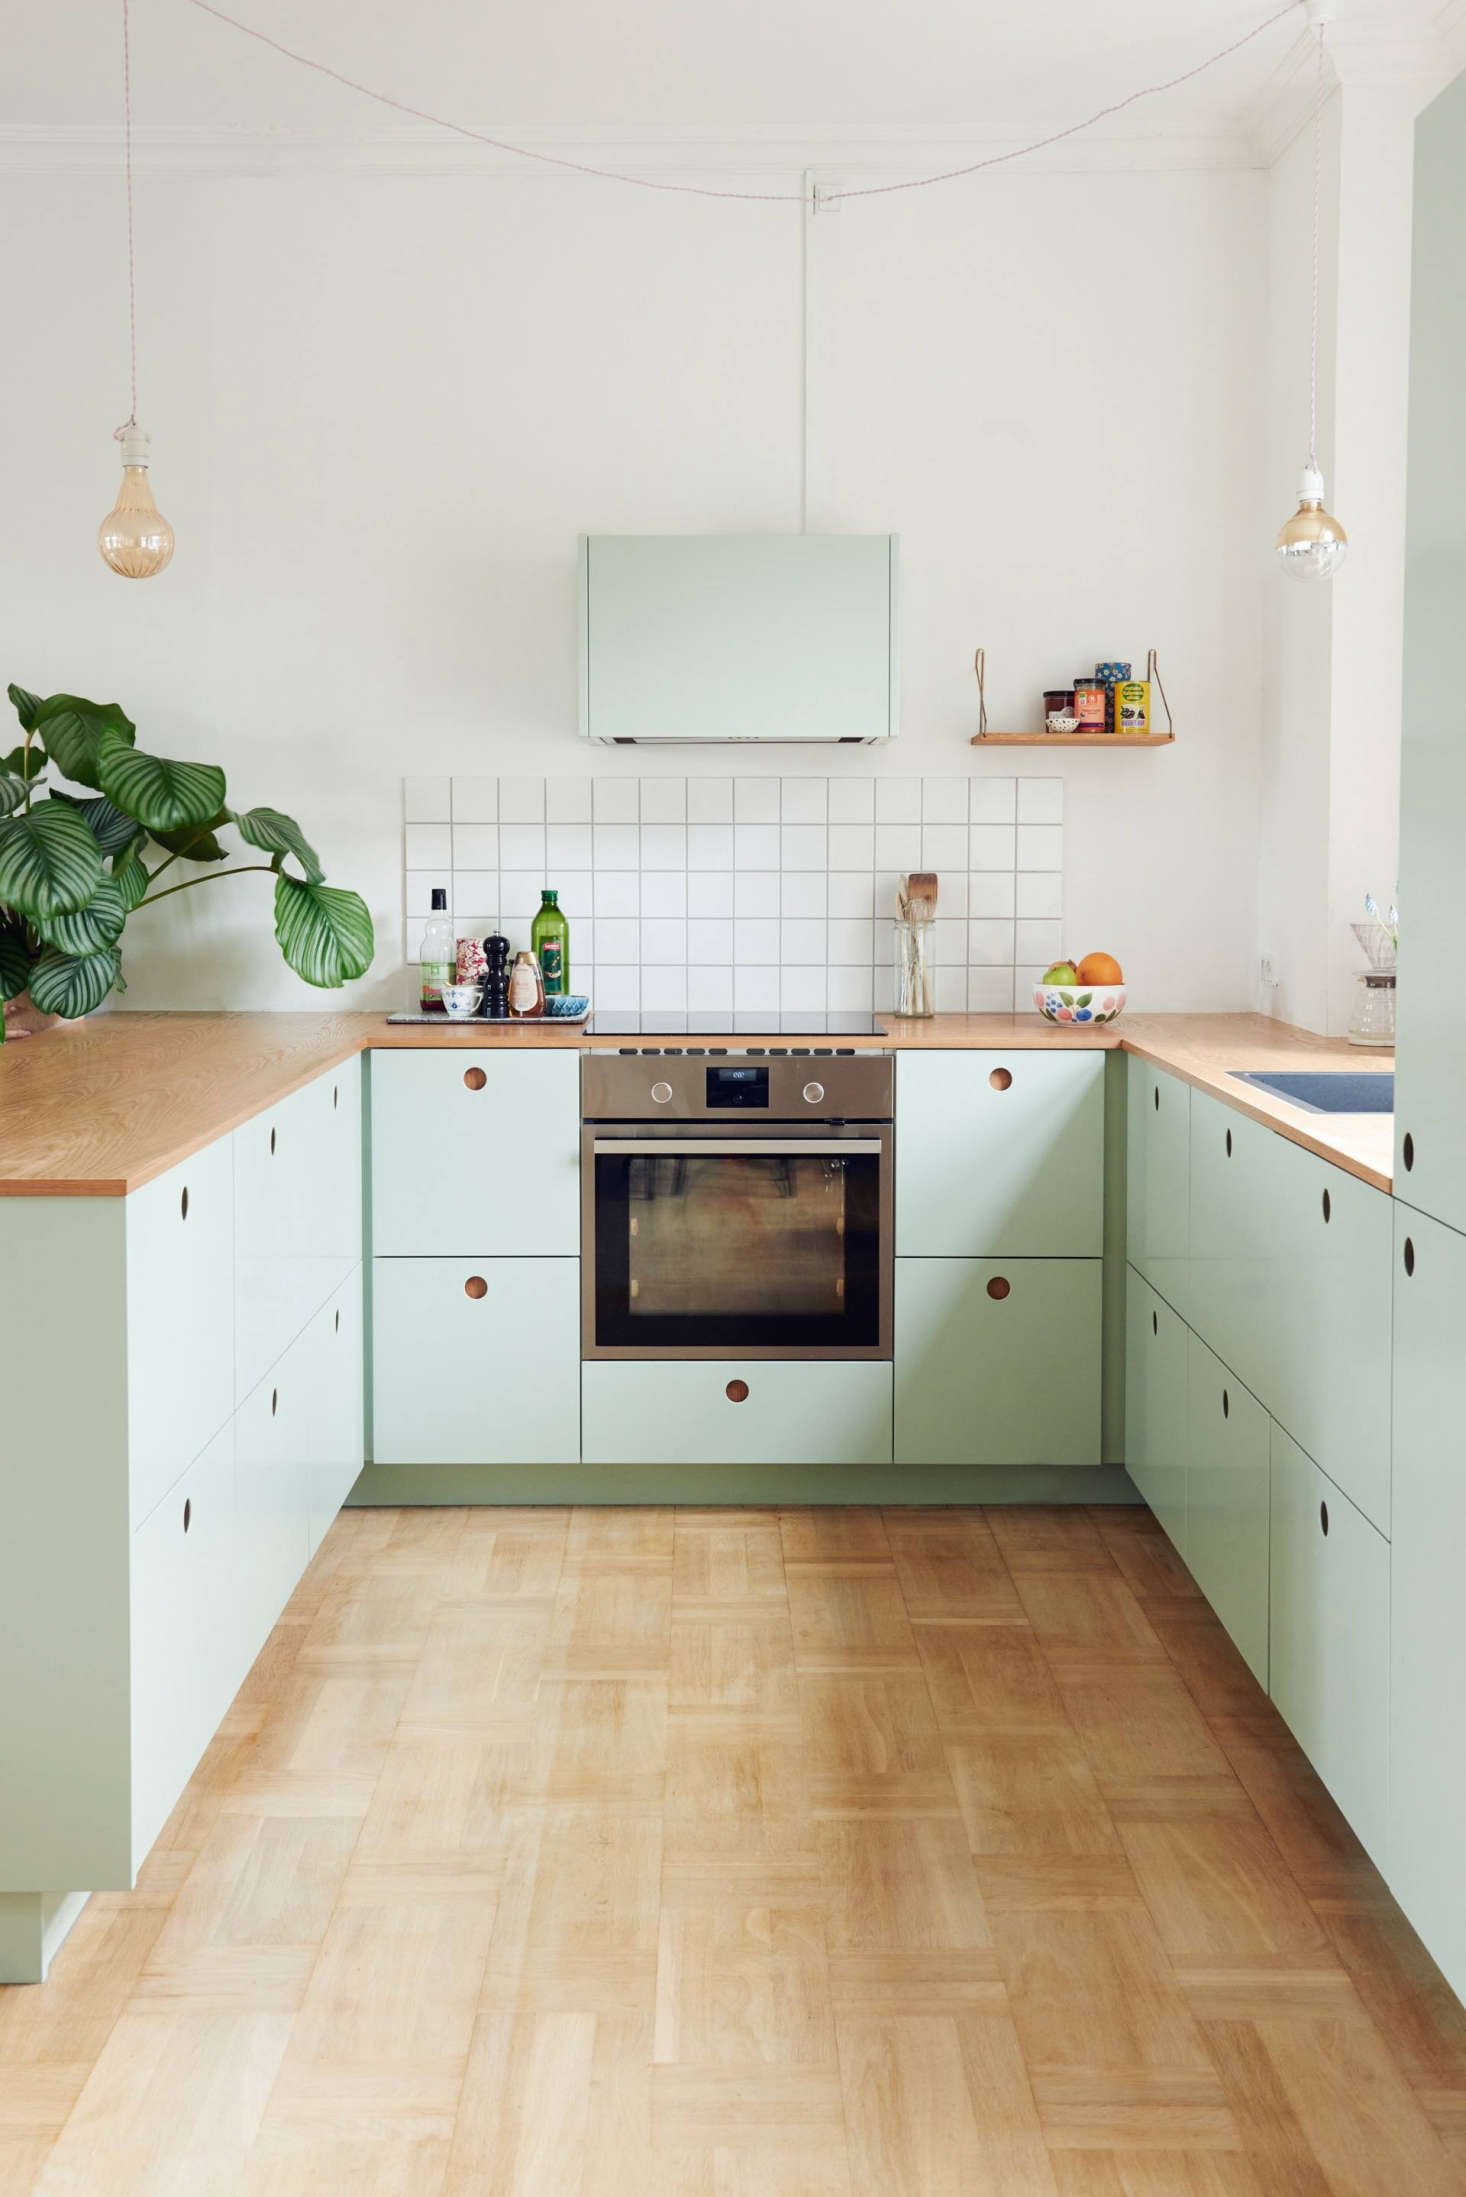 stylish ikea hack kitchen with mint green cabinet fronts by reform of denmark. Black Bedroom Furniture Sets. Home Design Ideas